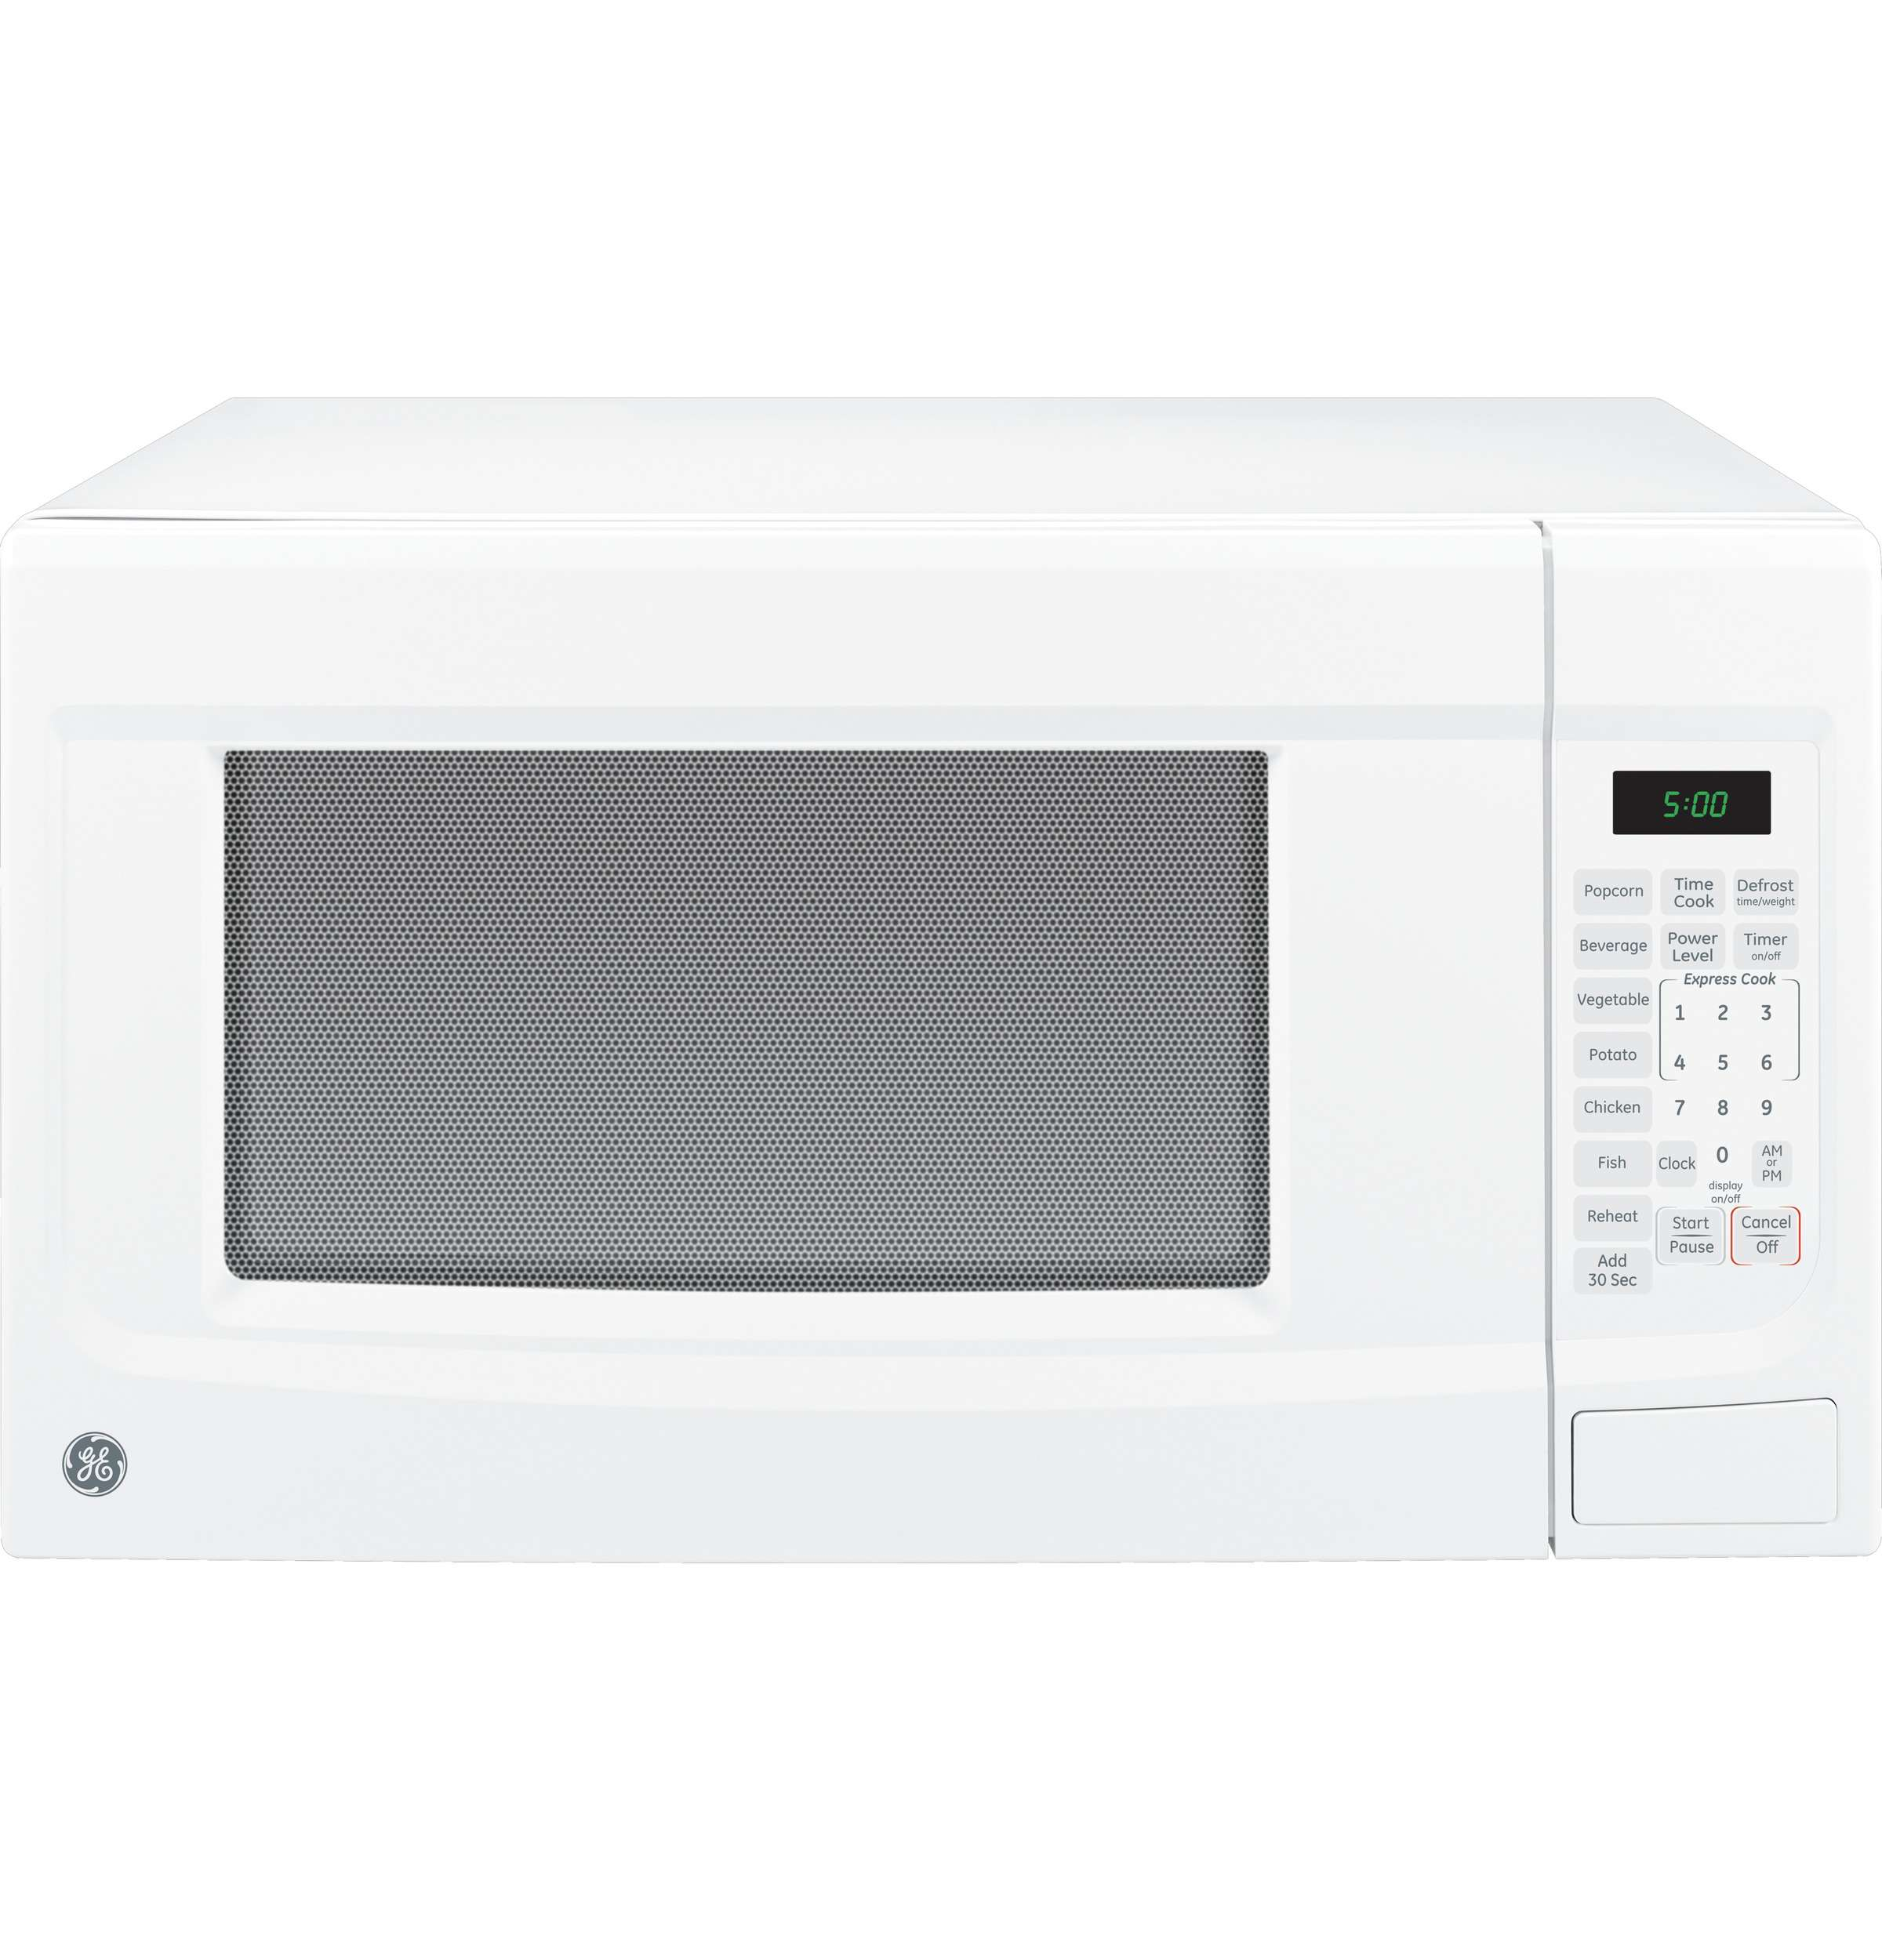 GE 22 In. Countertop 1.4 cu. ft. White Microwave - JES1460DSWW Image 2